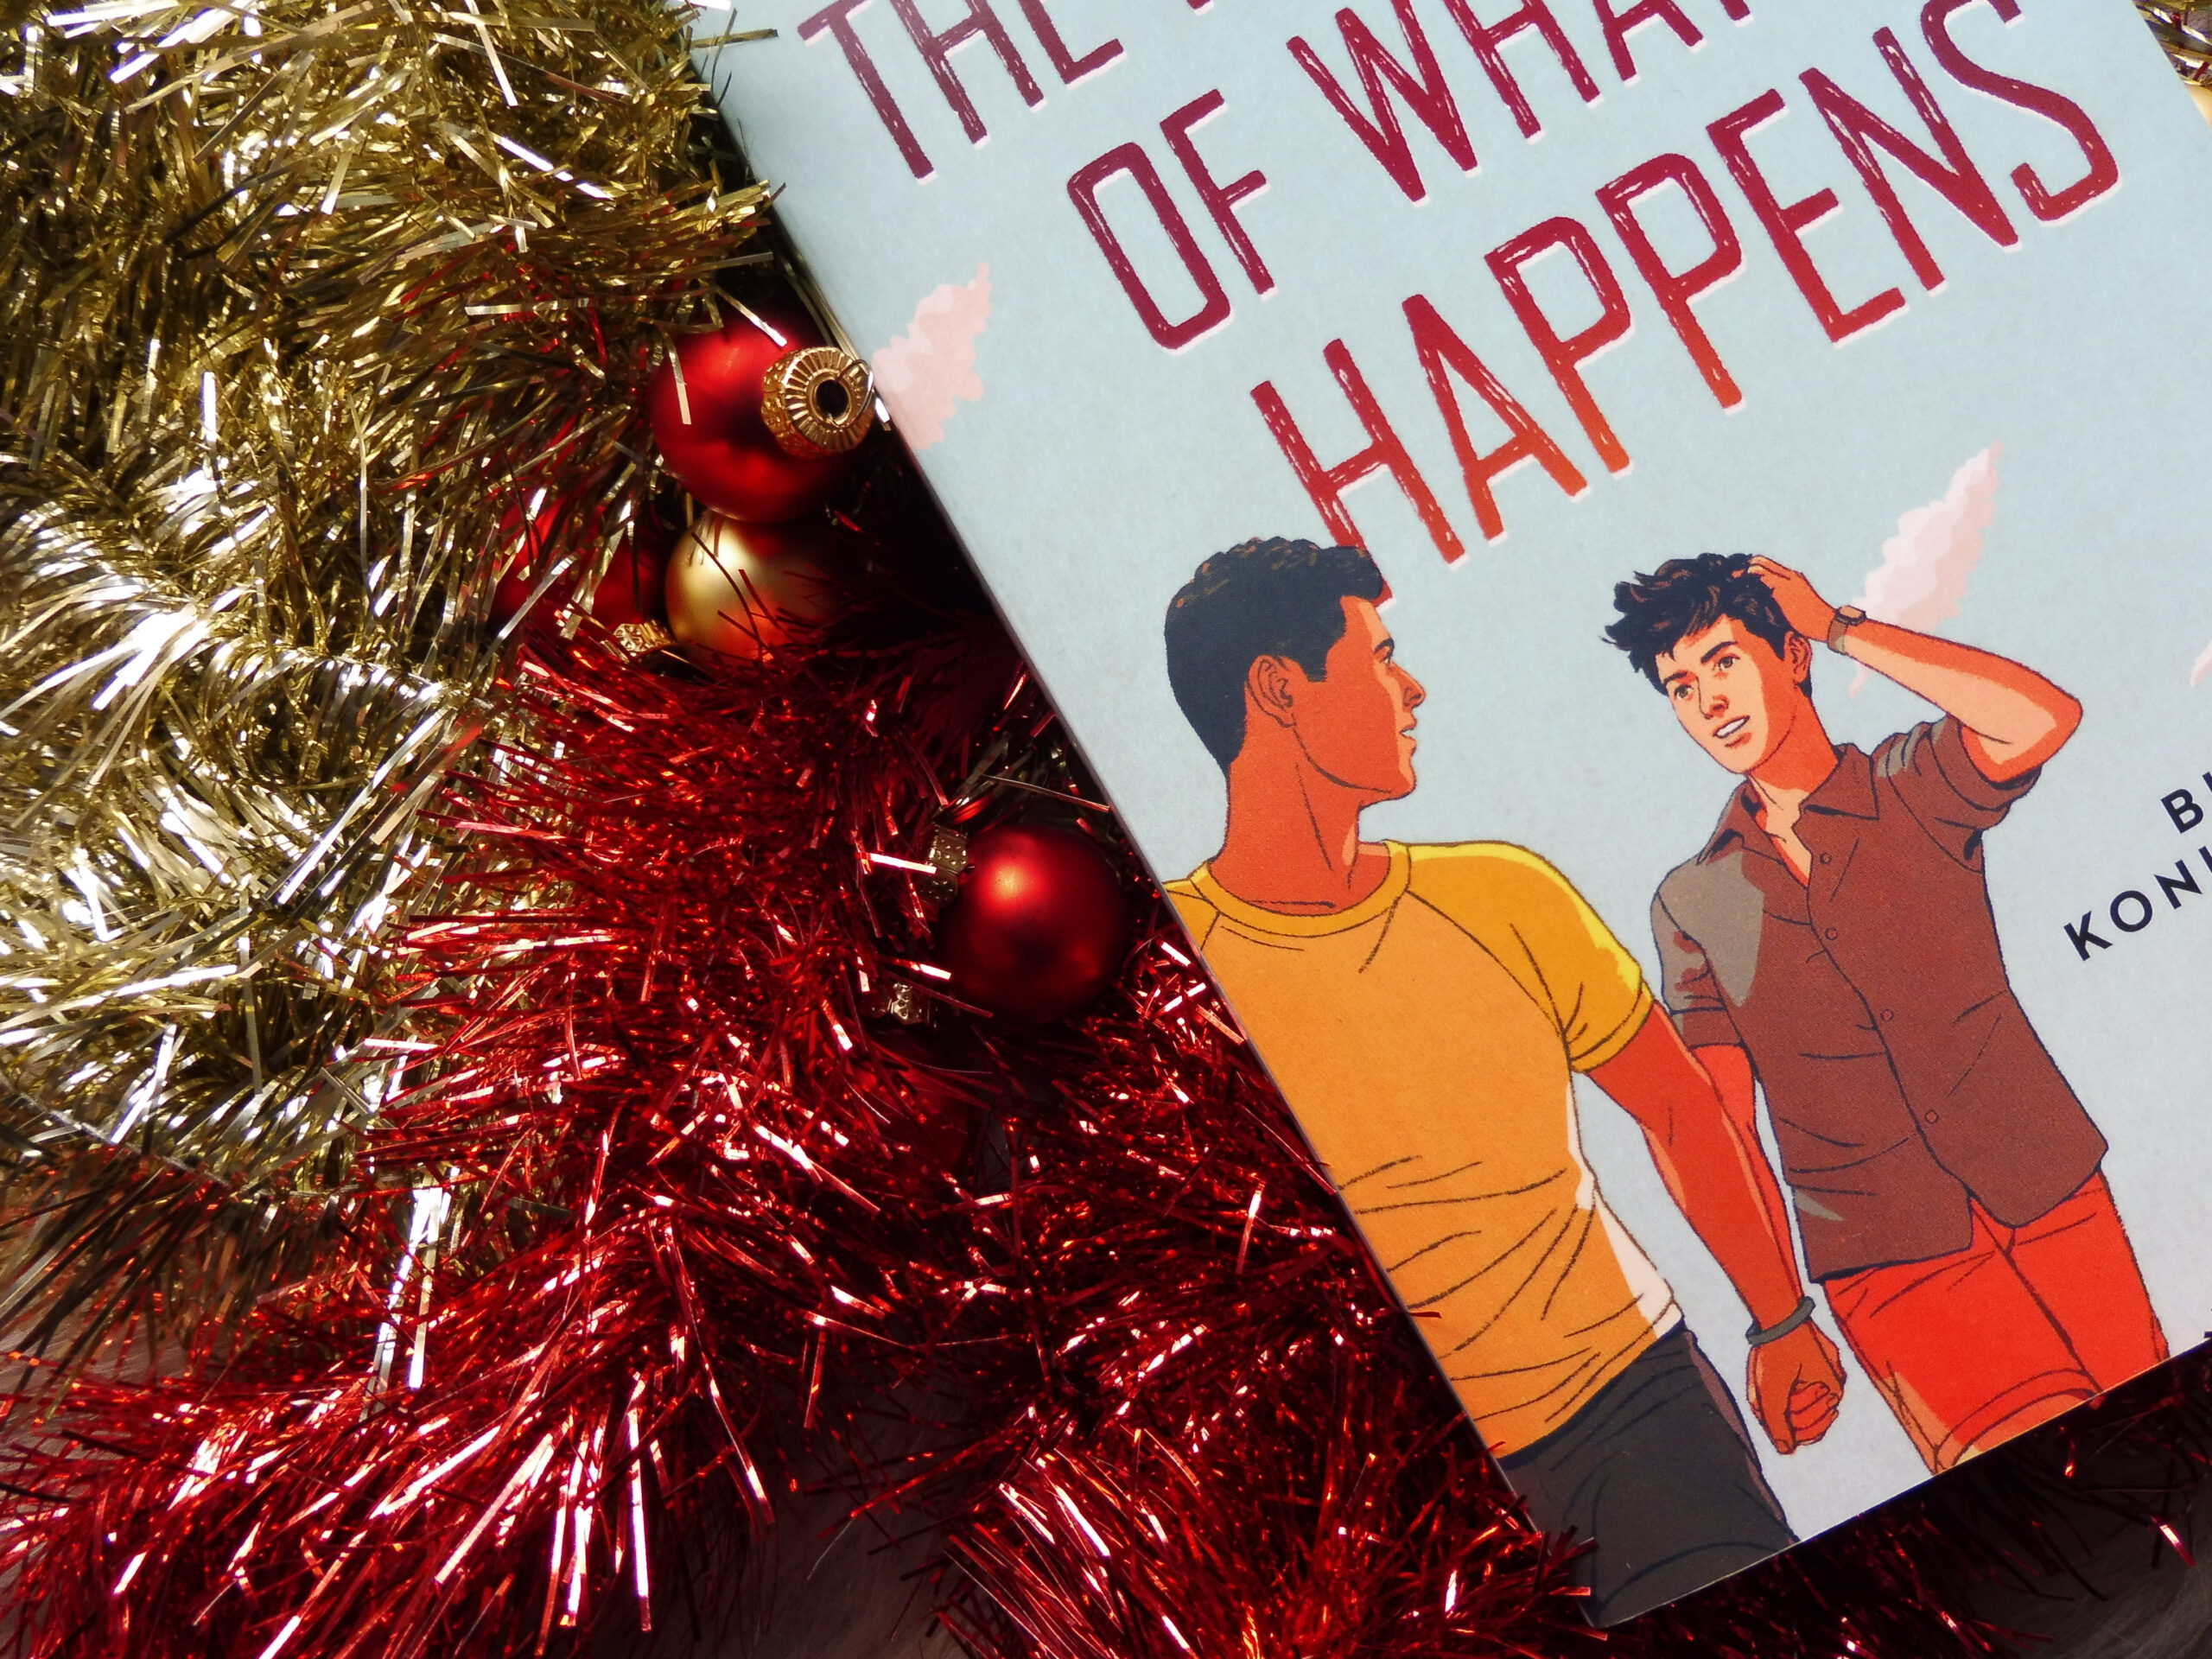 [Rezension] The Music of what happens